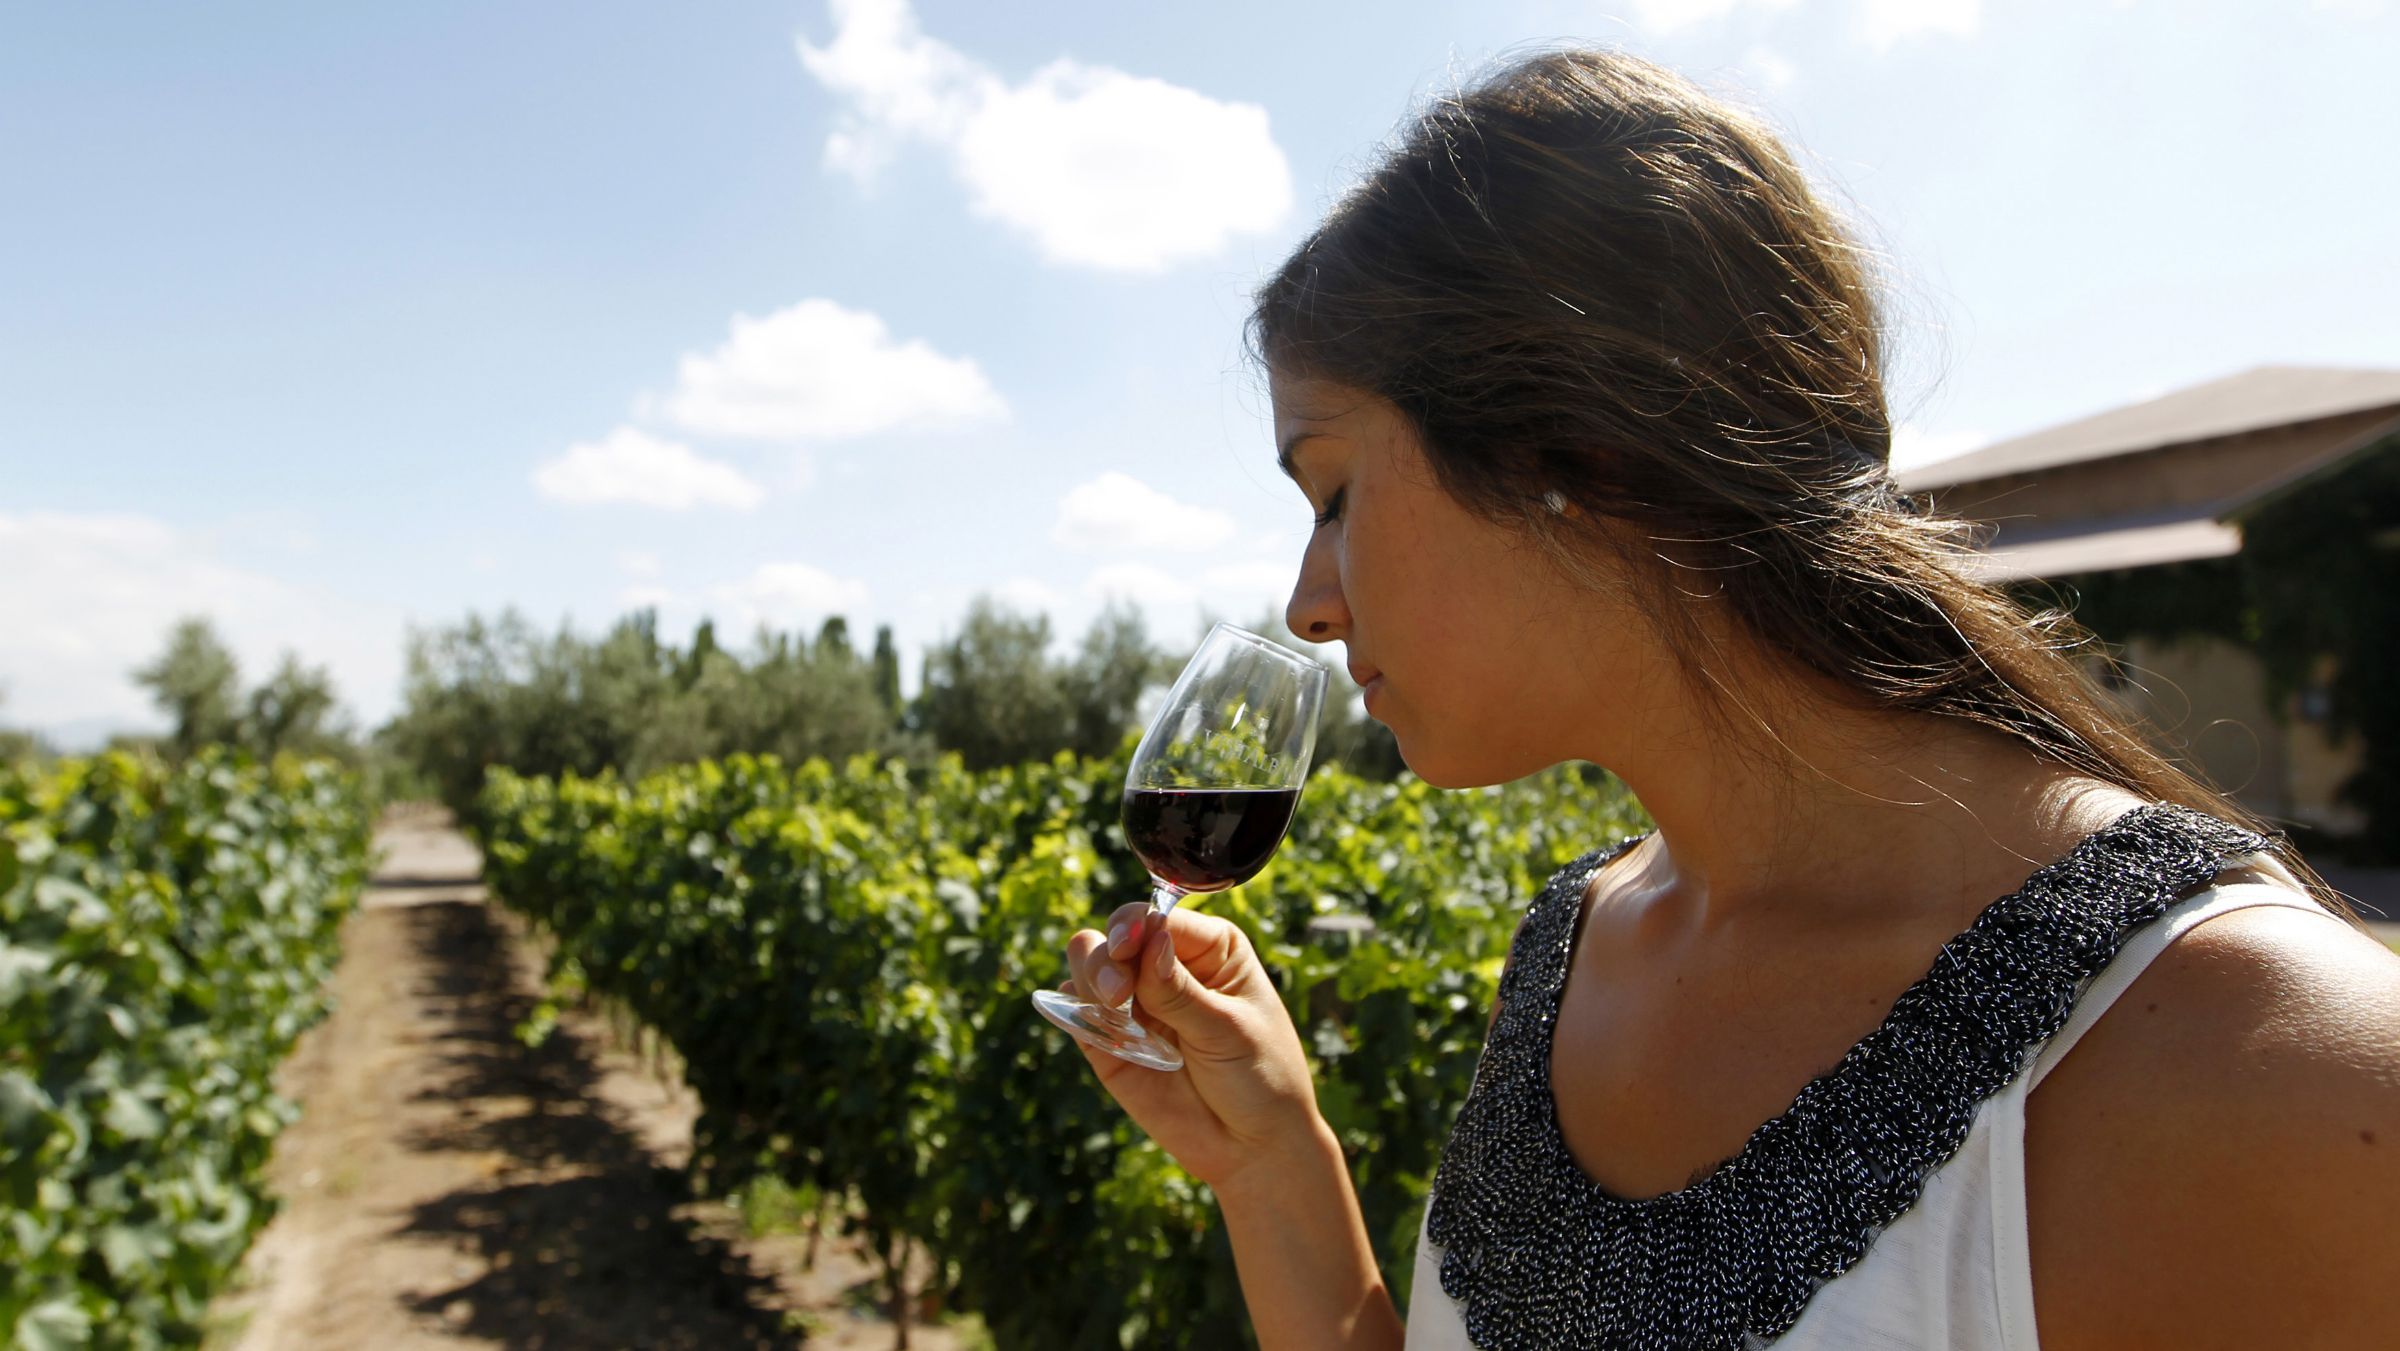 climate change wine vineyard Macarena Villalon tastes a glass of wine at a vineyard of the CAP Vistalba winery in Mendoza February 1, 2013. Argentina is the world's sixth largest wine-producing country, according to the FAO (Food and Agriculture Organization of the United Nations), with the eastern flank of the Andes near Mendoza being its premier region. REUTERS/Enrique Marcarian